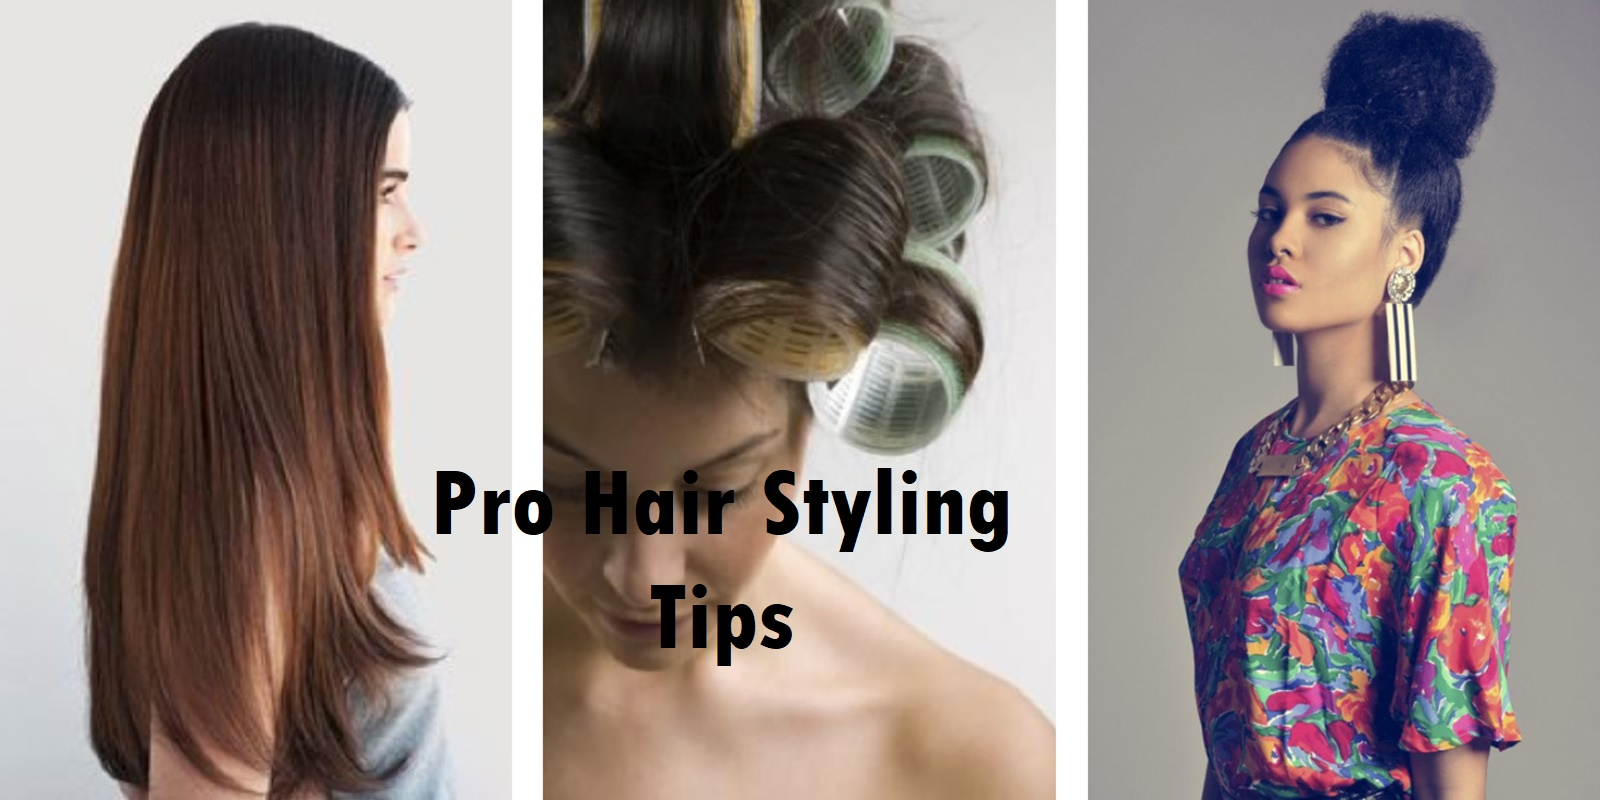 Long Hair Styling Tips How To Style Hair Safely Styling Tips From The Hairstyling .